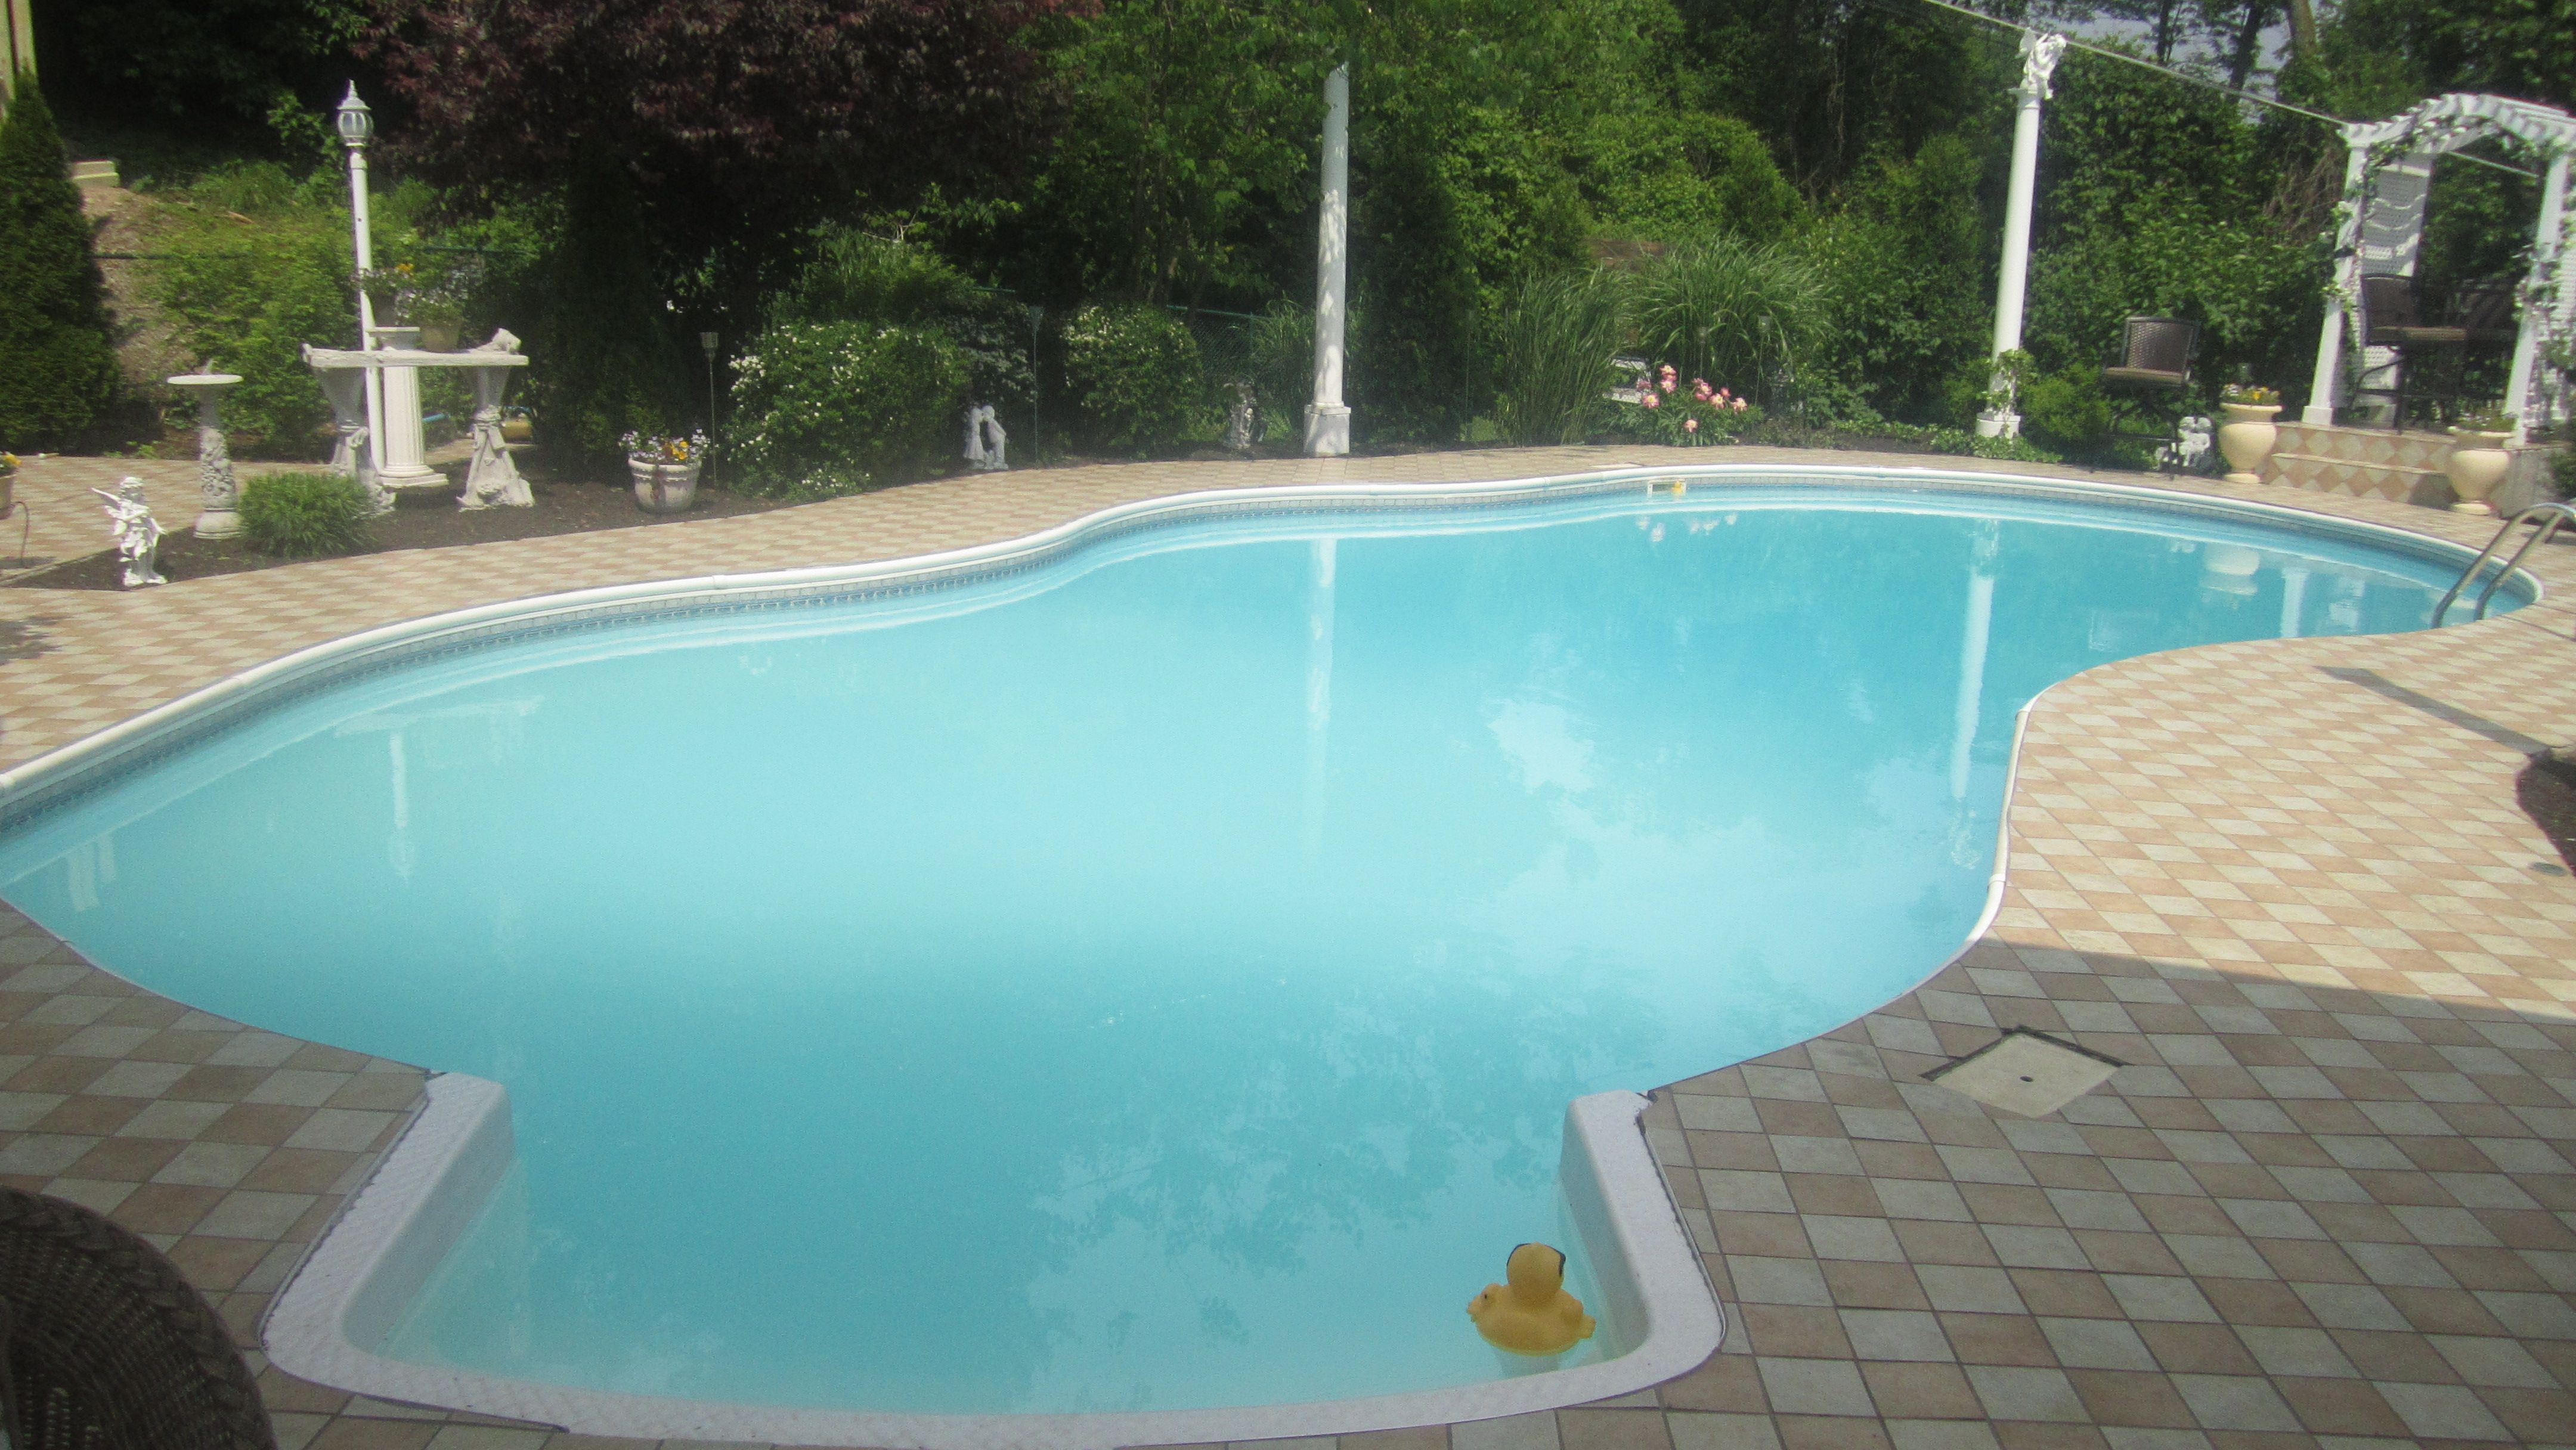 My pool in PIttsburgh in the summer!